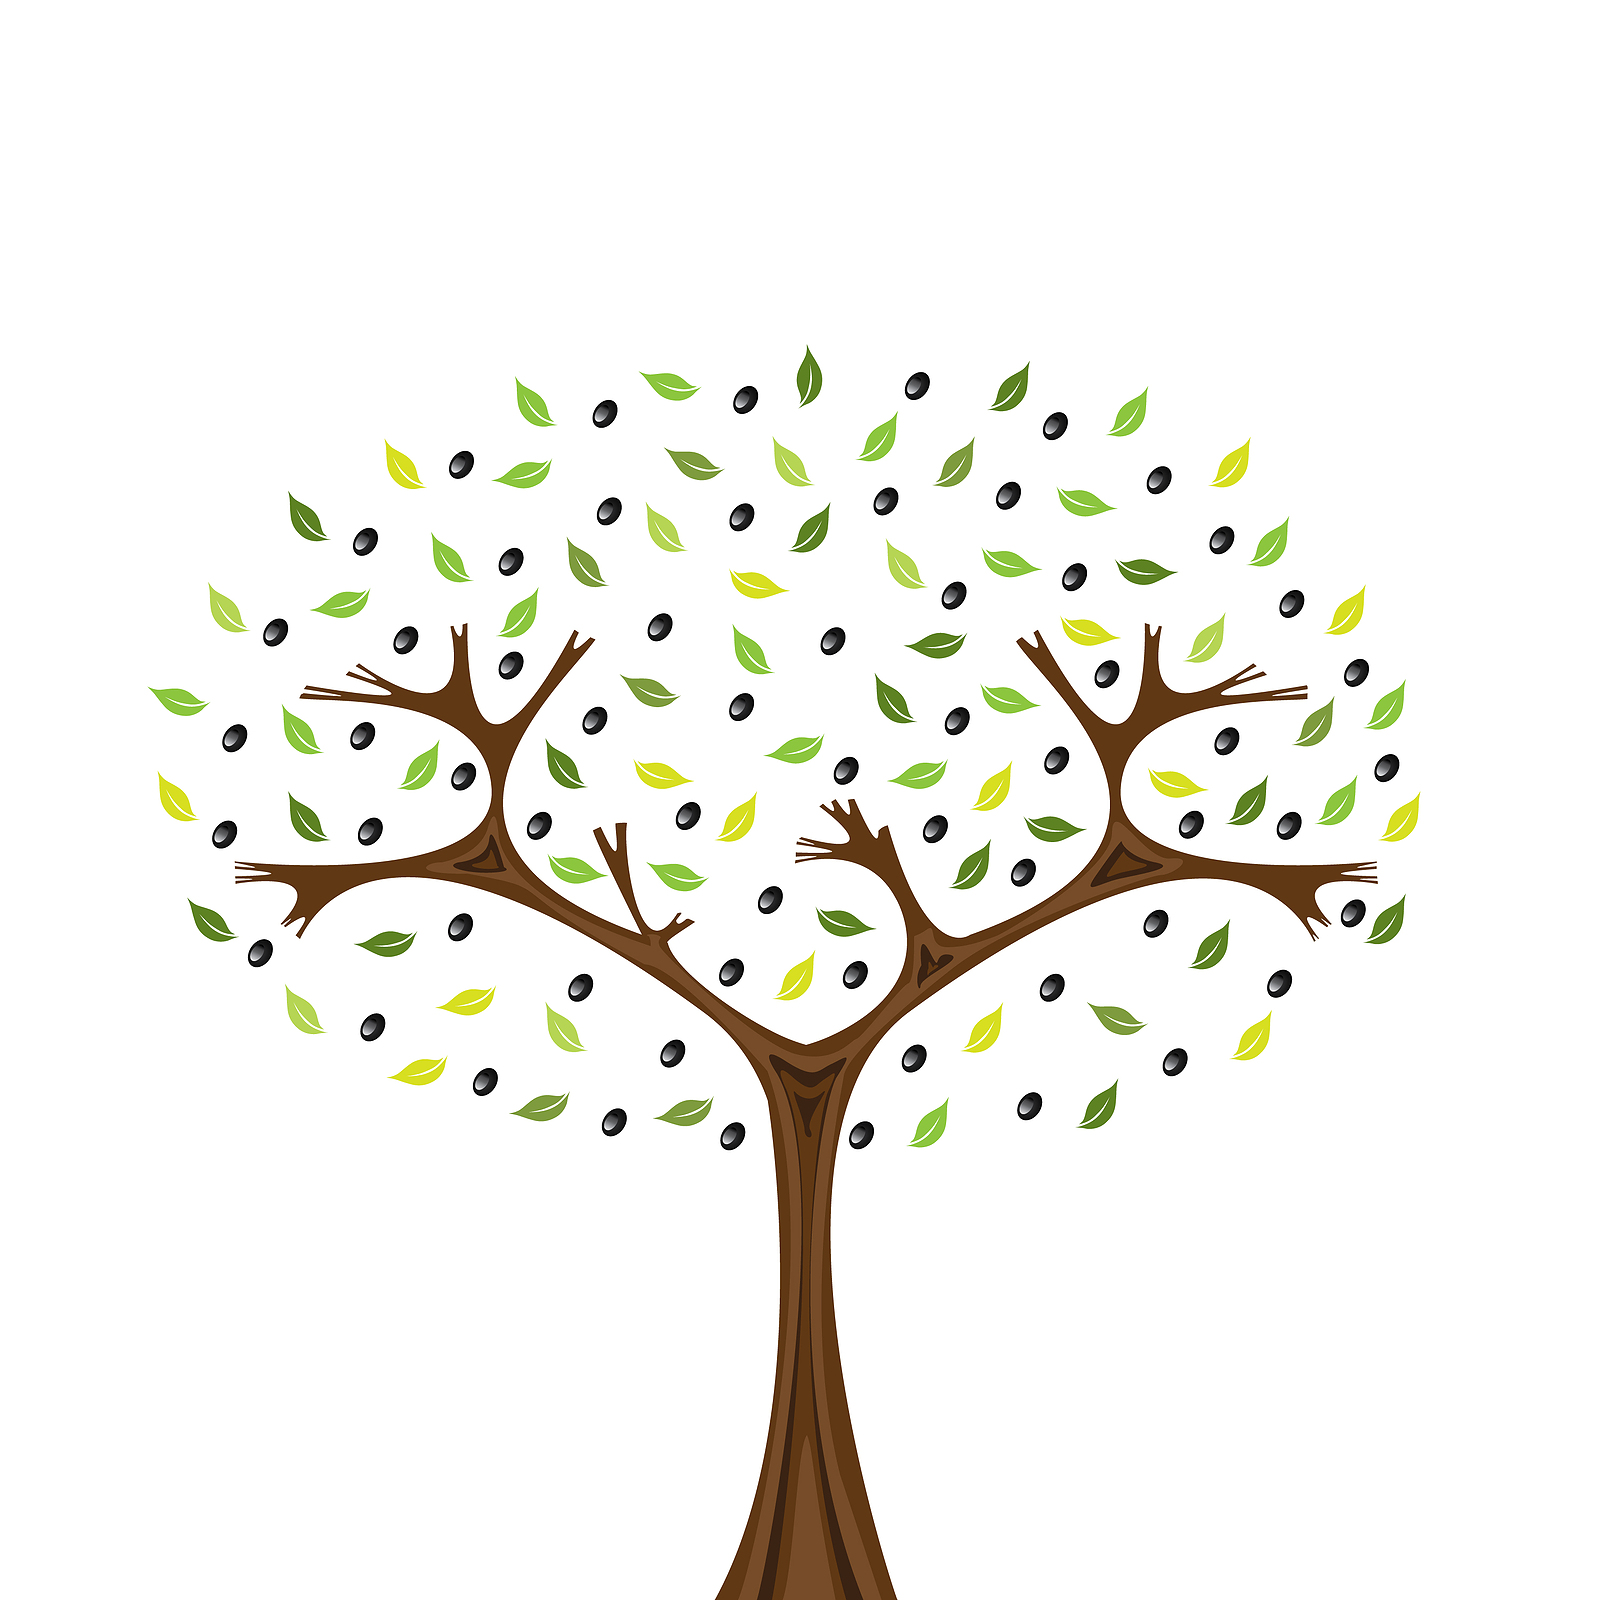 Illustration of olivetree